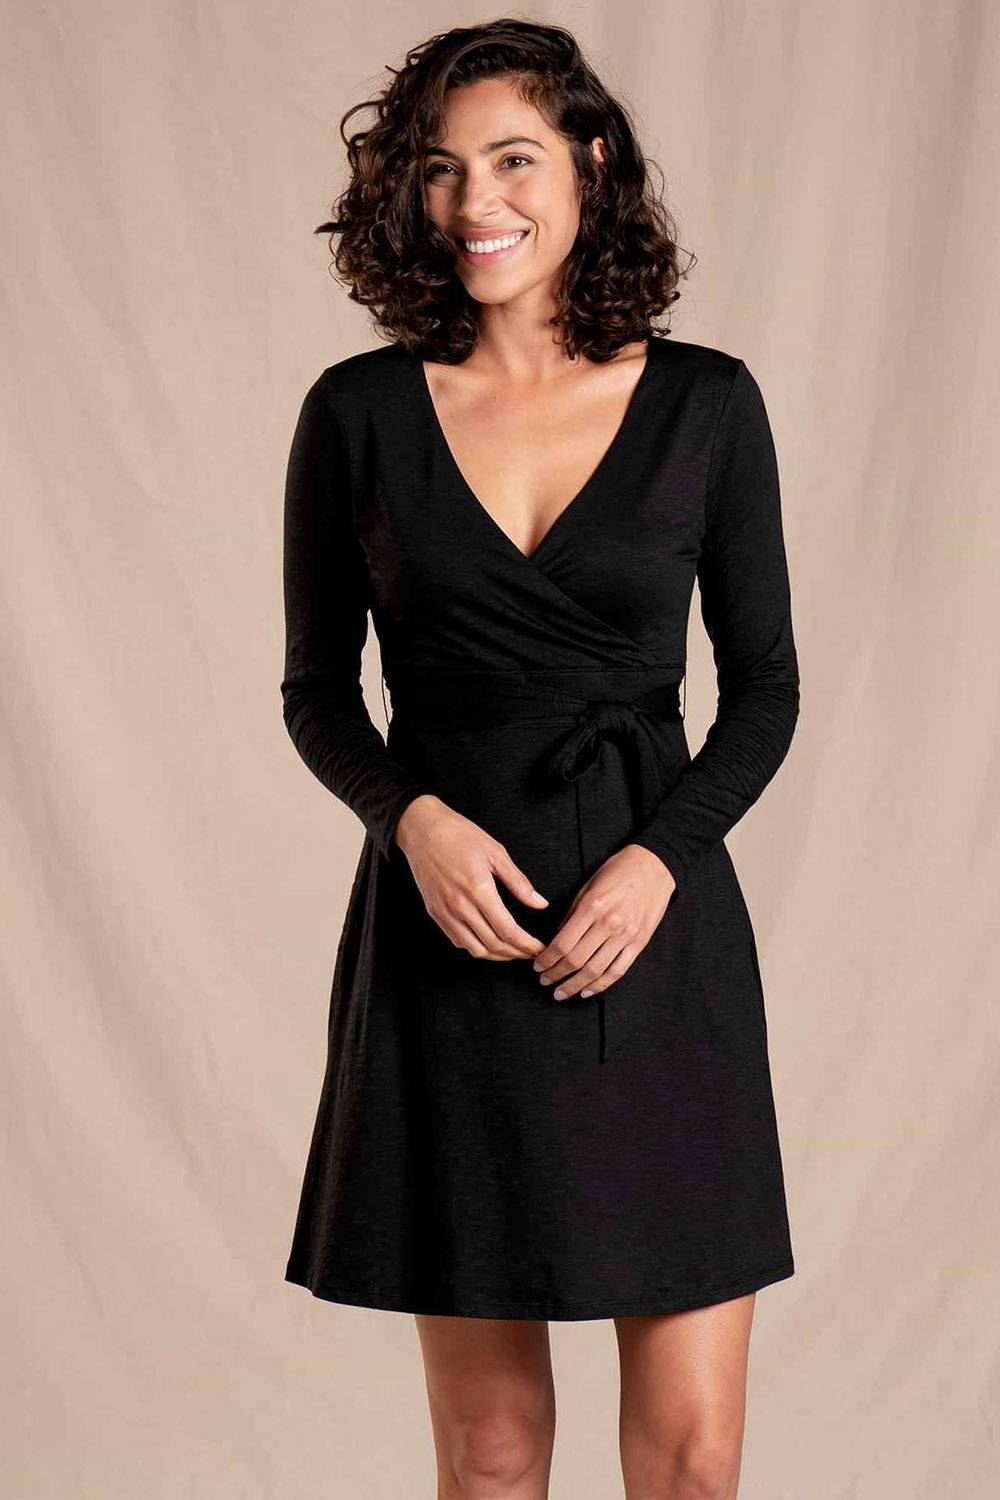 toadandco affordable sustainable formal dress